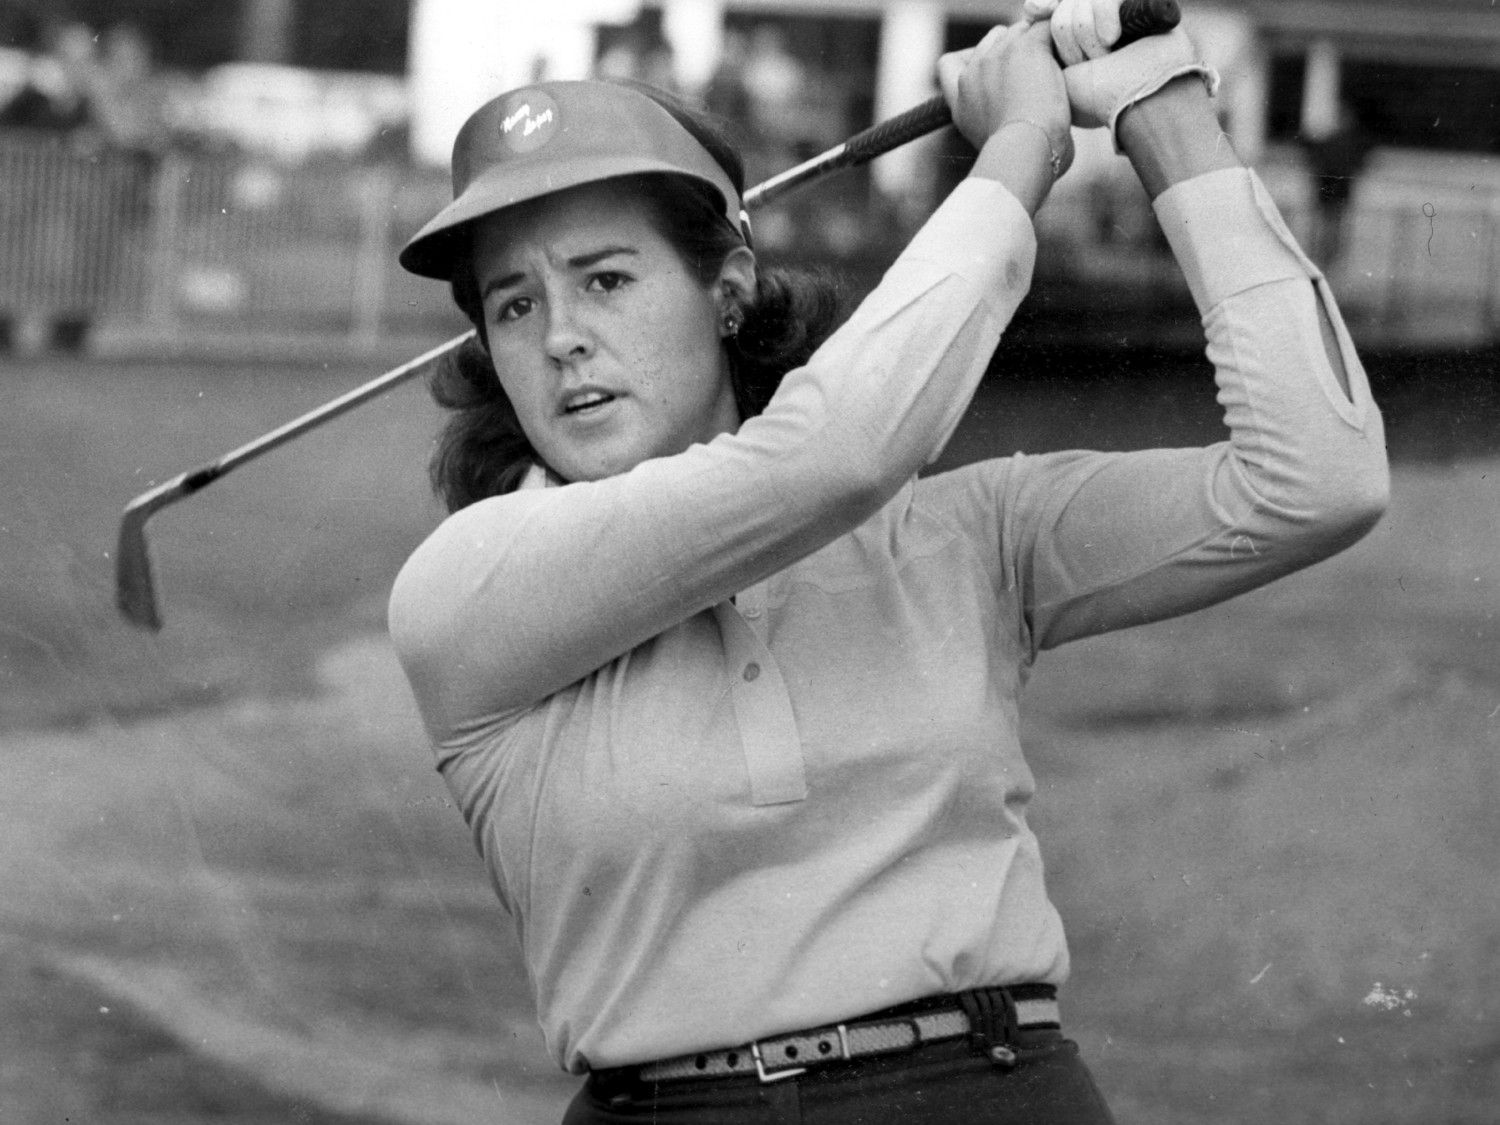 Golfer Nancy Lopez: Biography and Career Facts